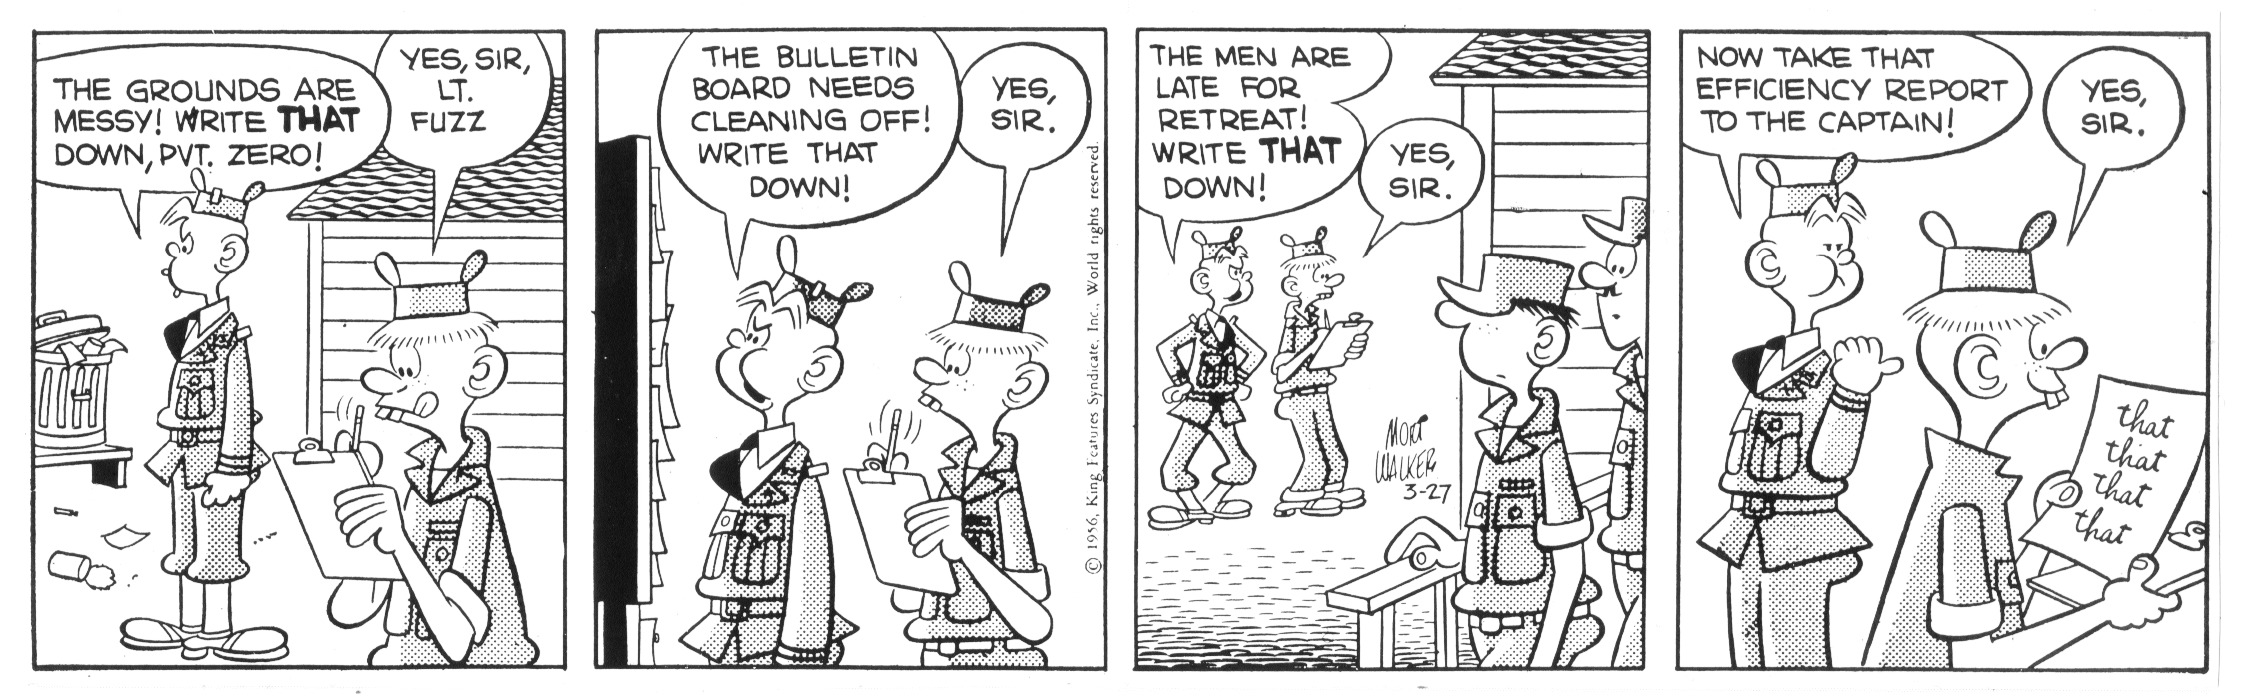 Beetle Bailey daily strip, March 27, 1956.